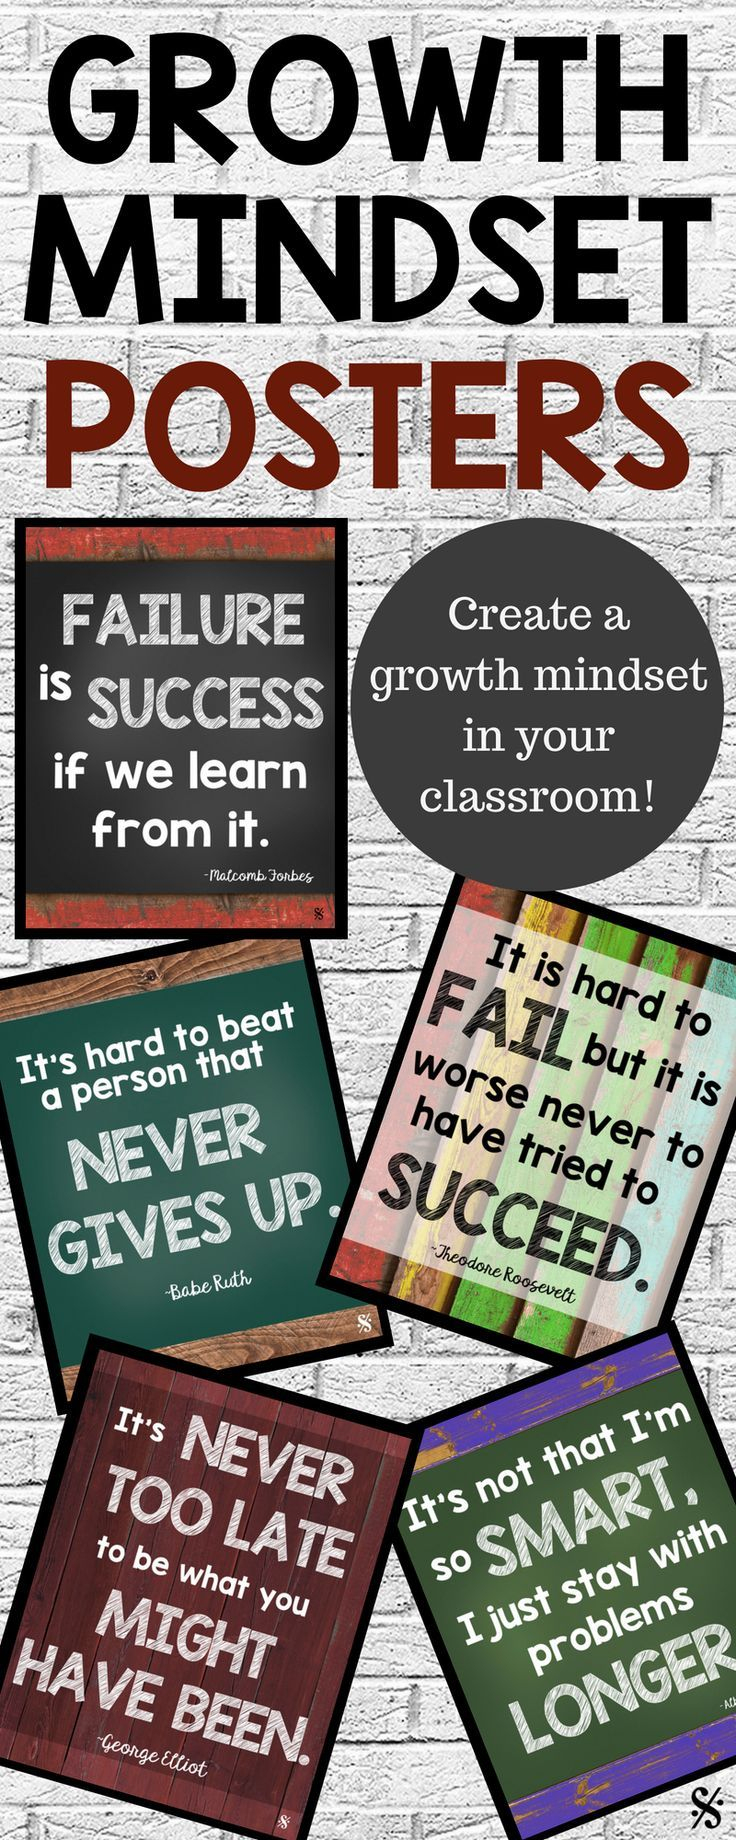 Growth Mindset Posters | Band Resources & Free Downloads For Band - Free Printable Music Posters